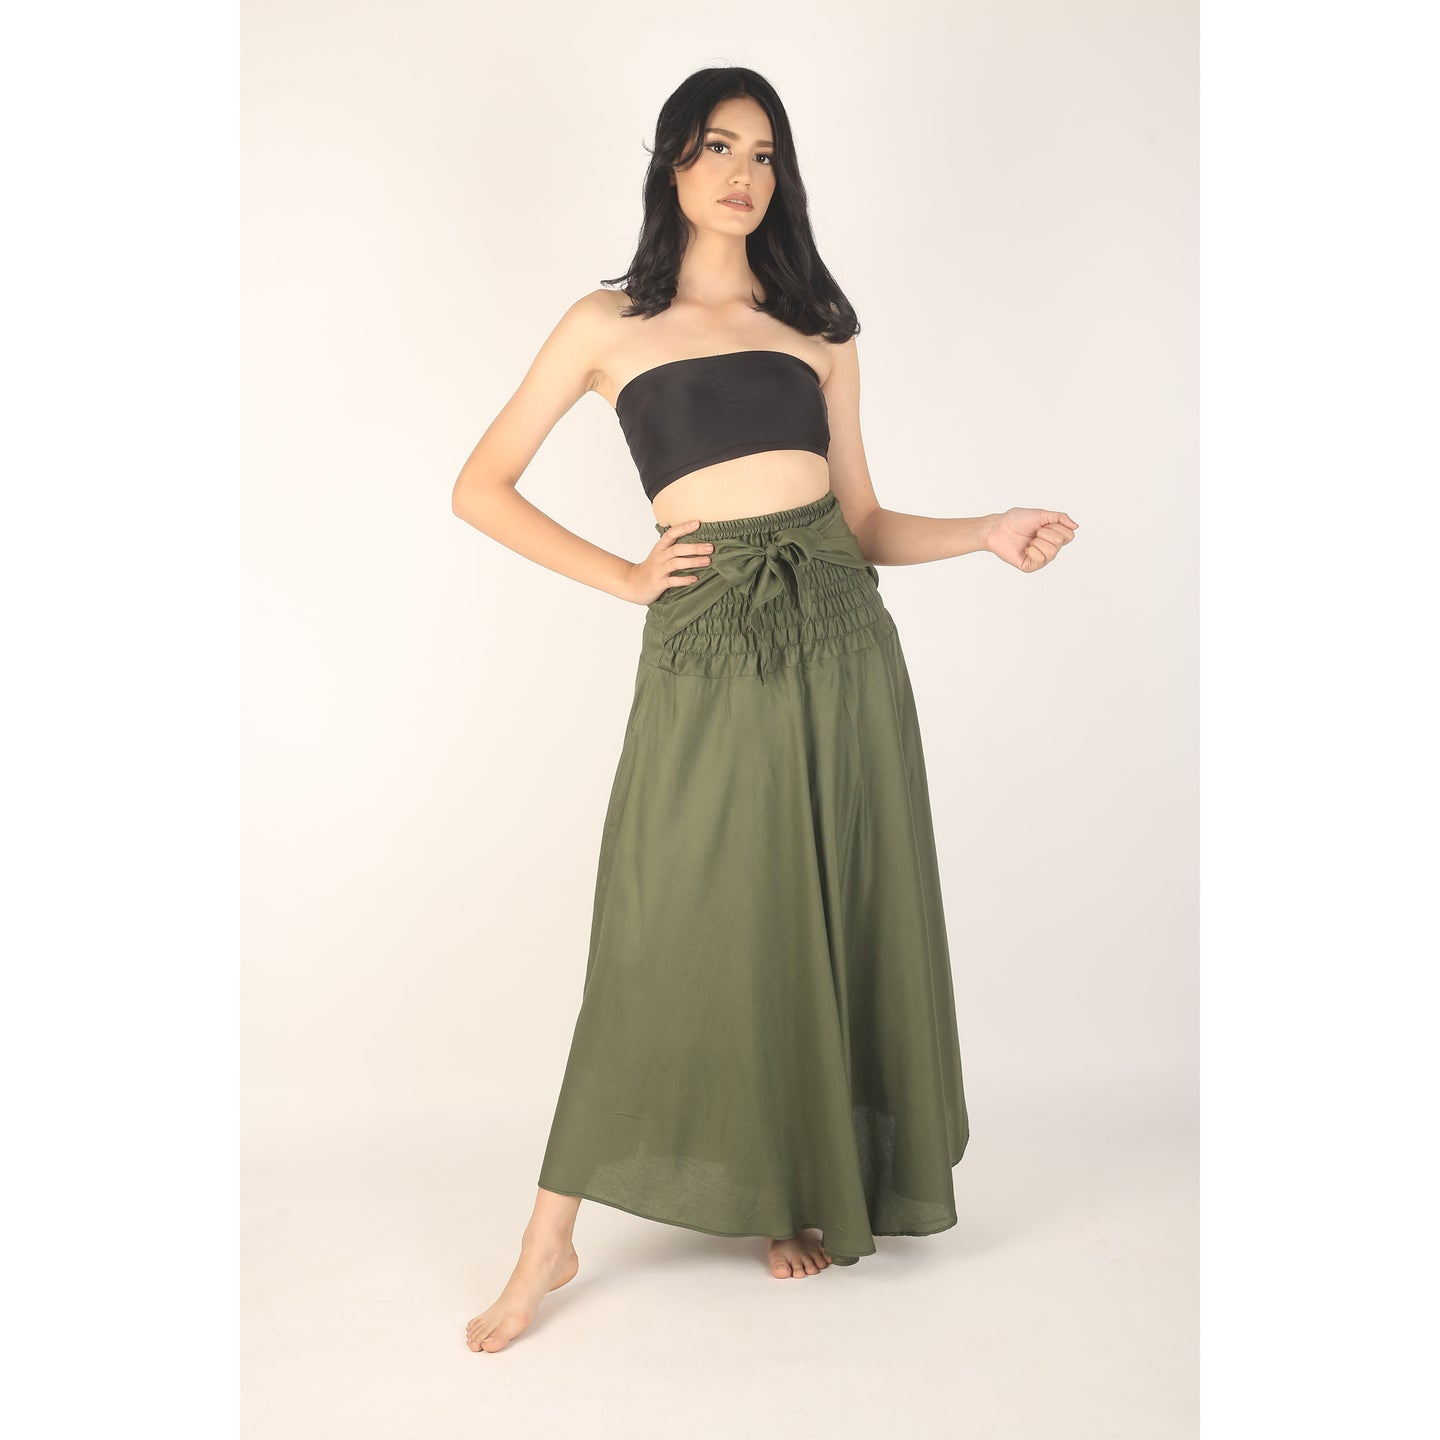 Solid Color Women's Bohemian Skirt in Olive SK0033 020000 13